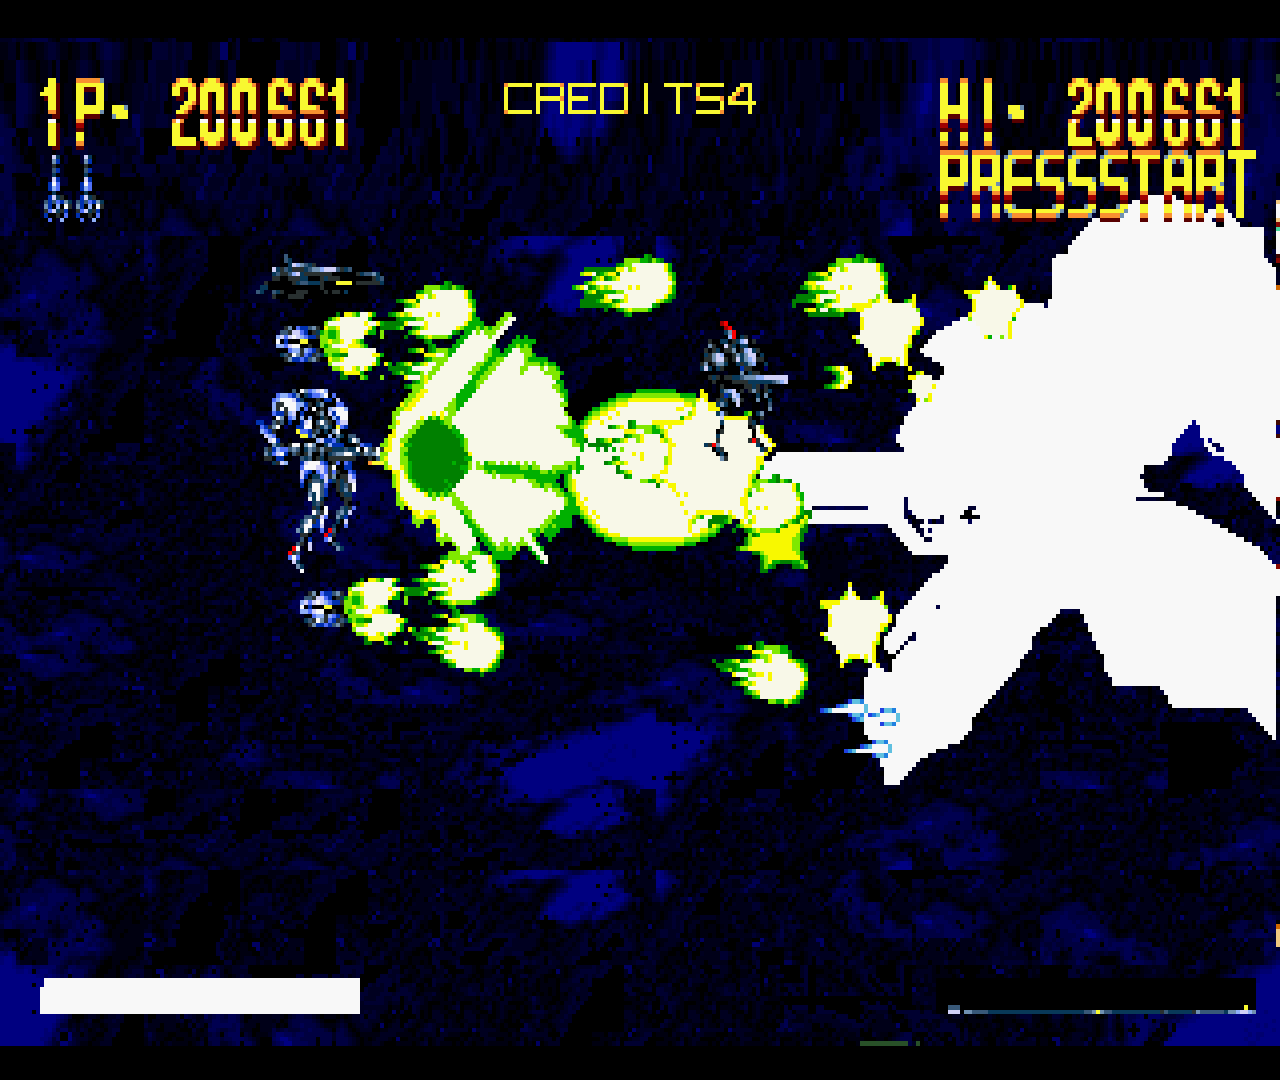 Figure 12 - In this game, it's not just the enemies who can shoot hundreds of bullets